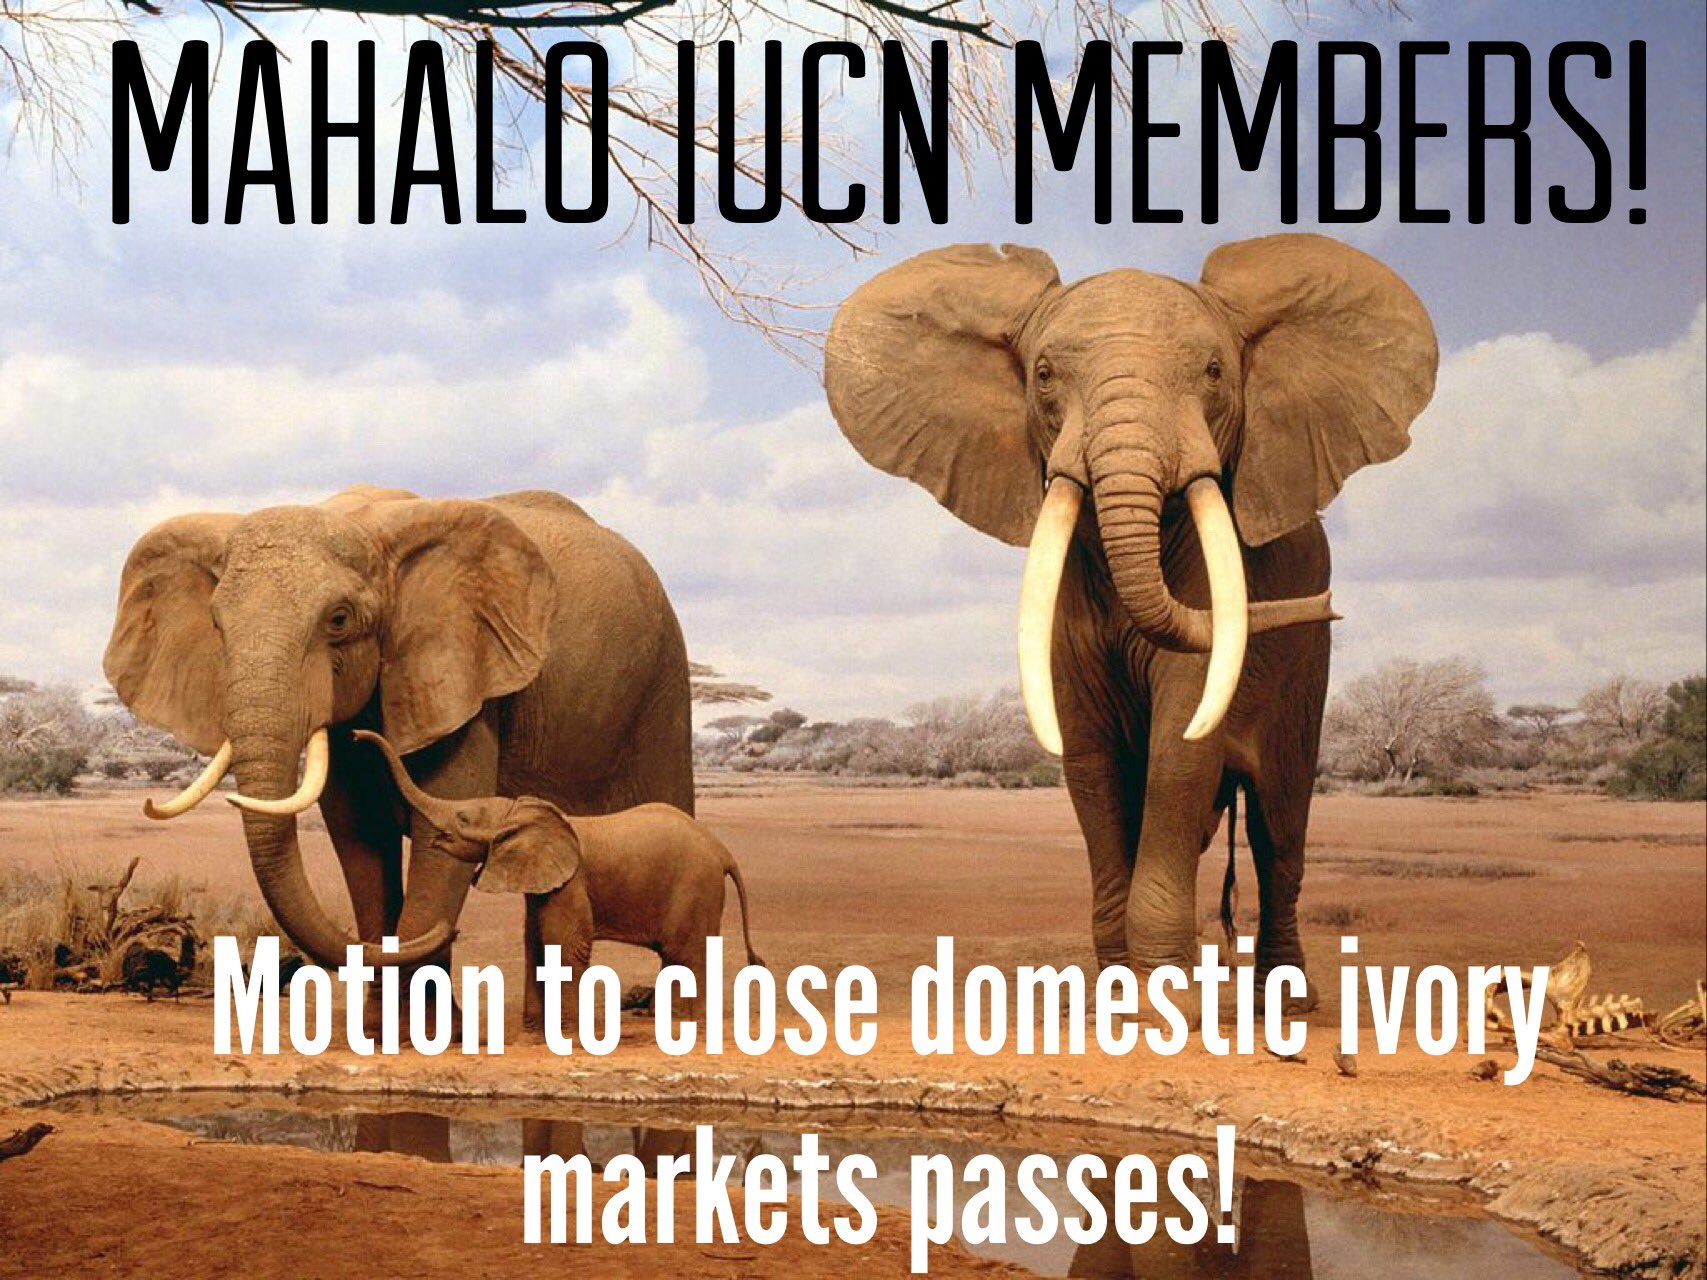 Mahalo @IUCN Members for passing Motion 007 & taking action to protect elephants from extinction! #IUCNCongress https://t.co/fEYzNtEOW9